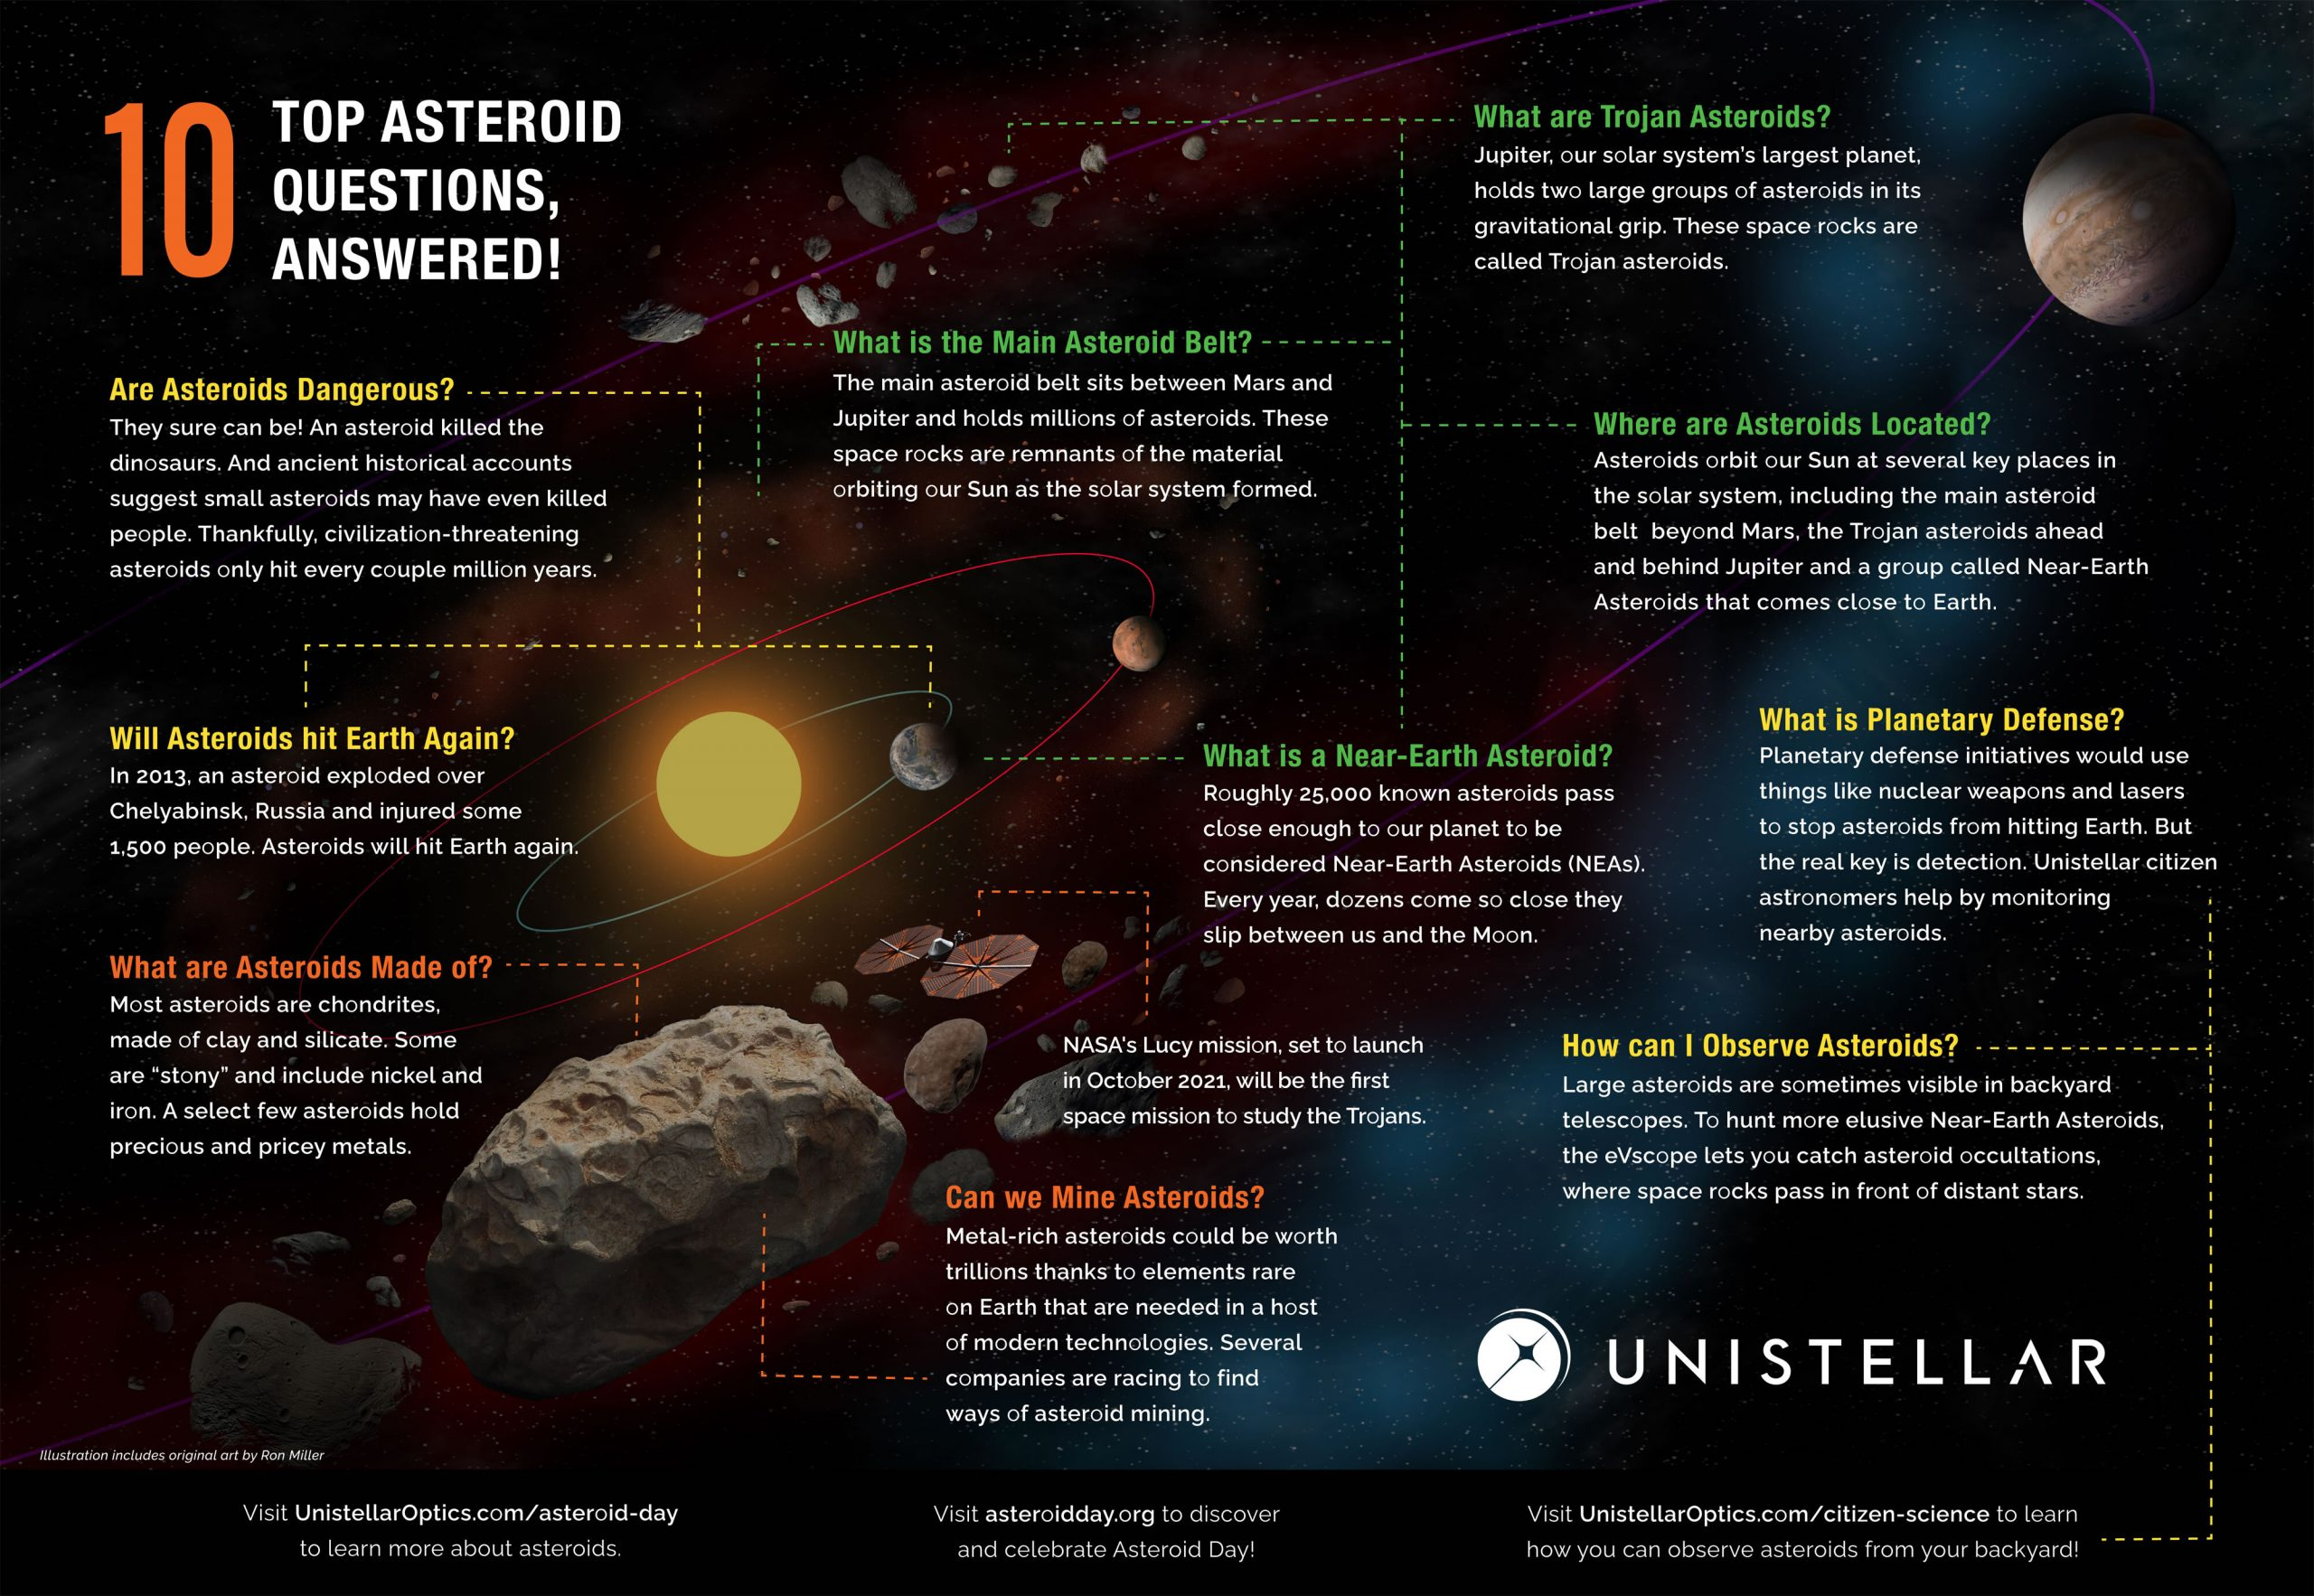 10 questions about asteroids answered